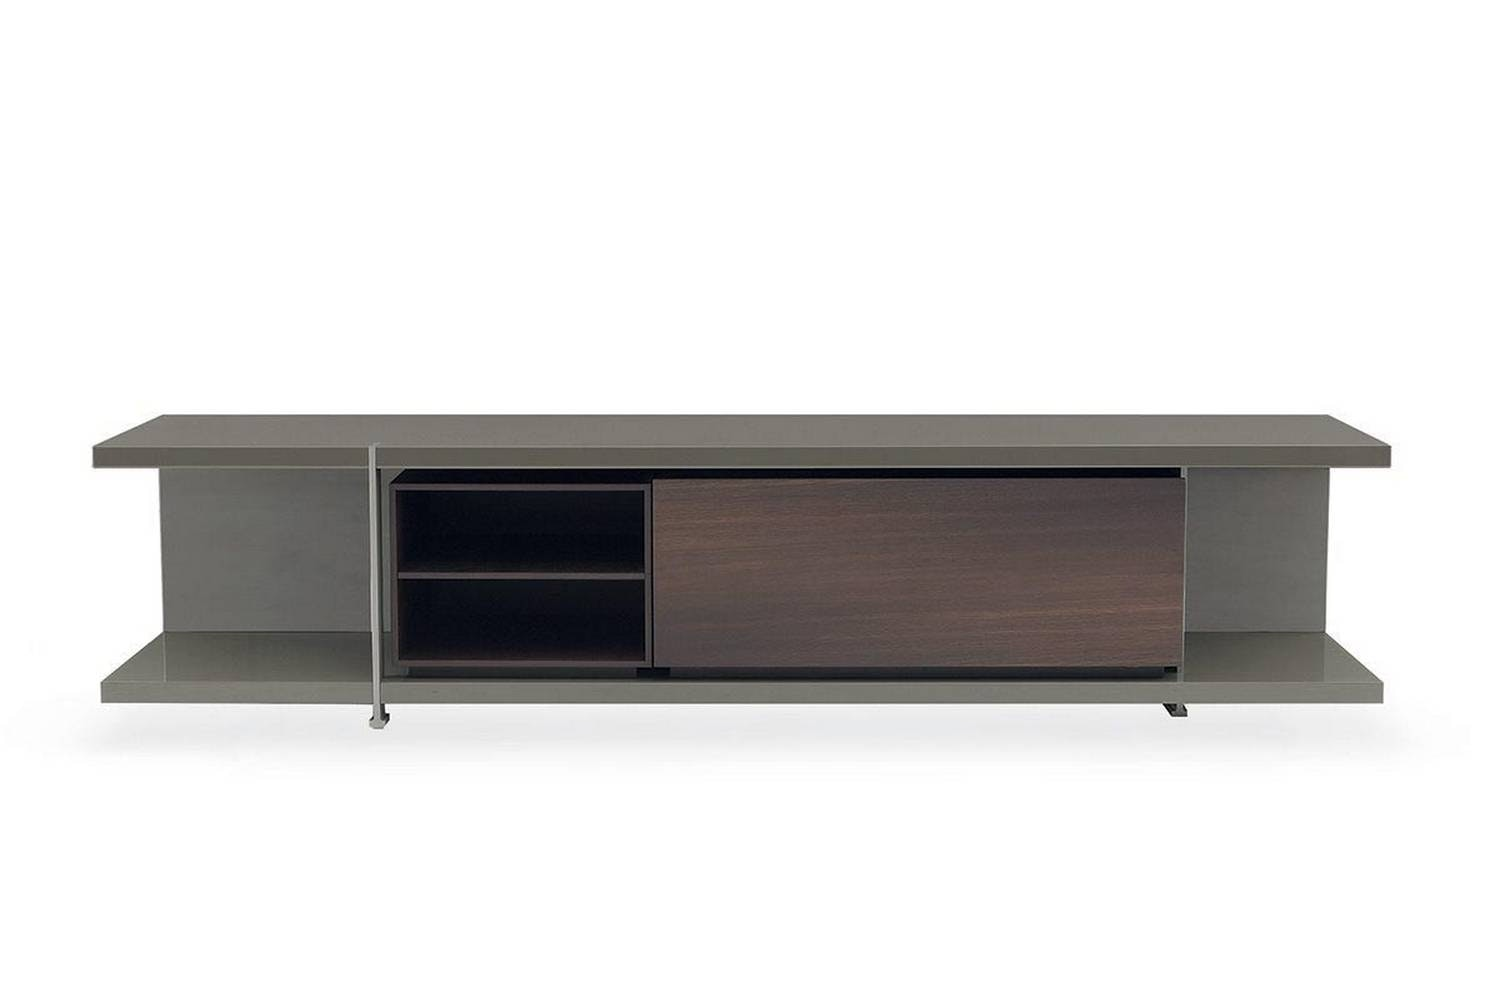 Bristol System Sideboard by J. M. Massaud for Poliform